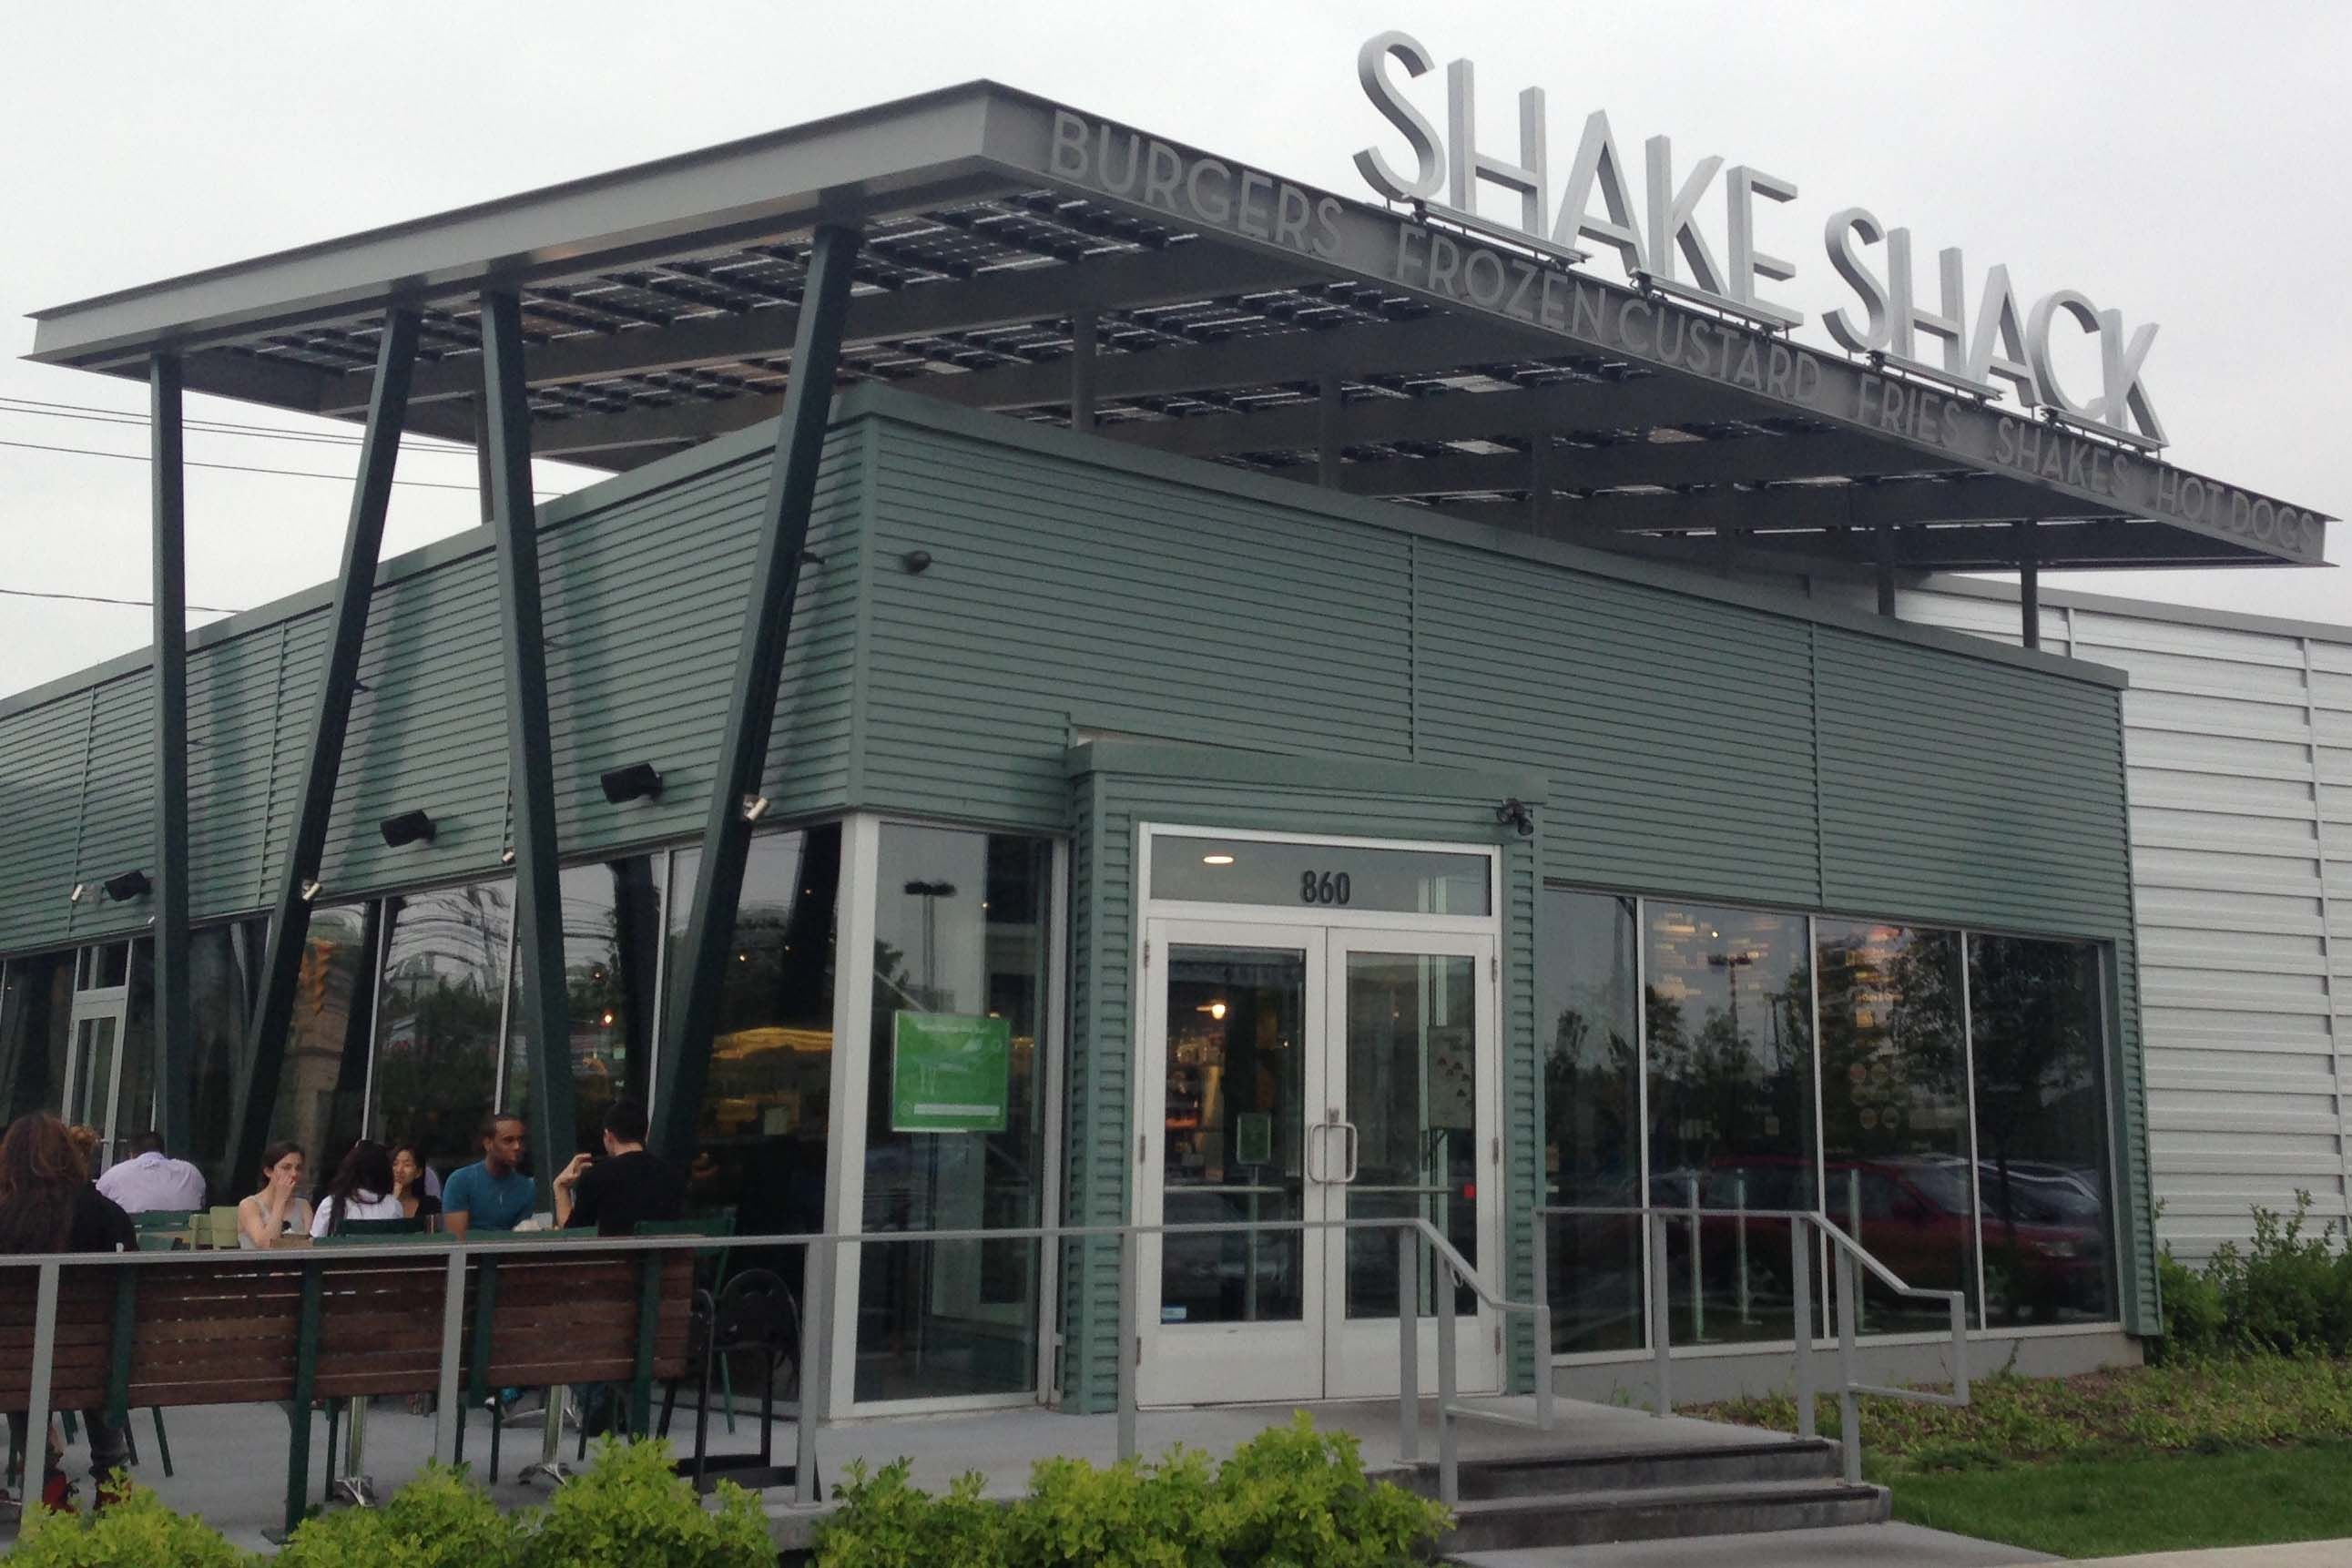 Lsx solar canopy covering that shades the shake shack